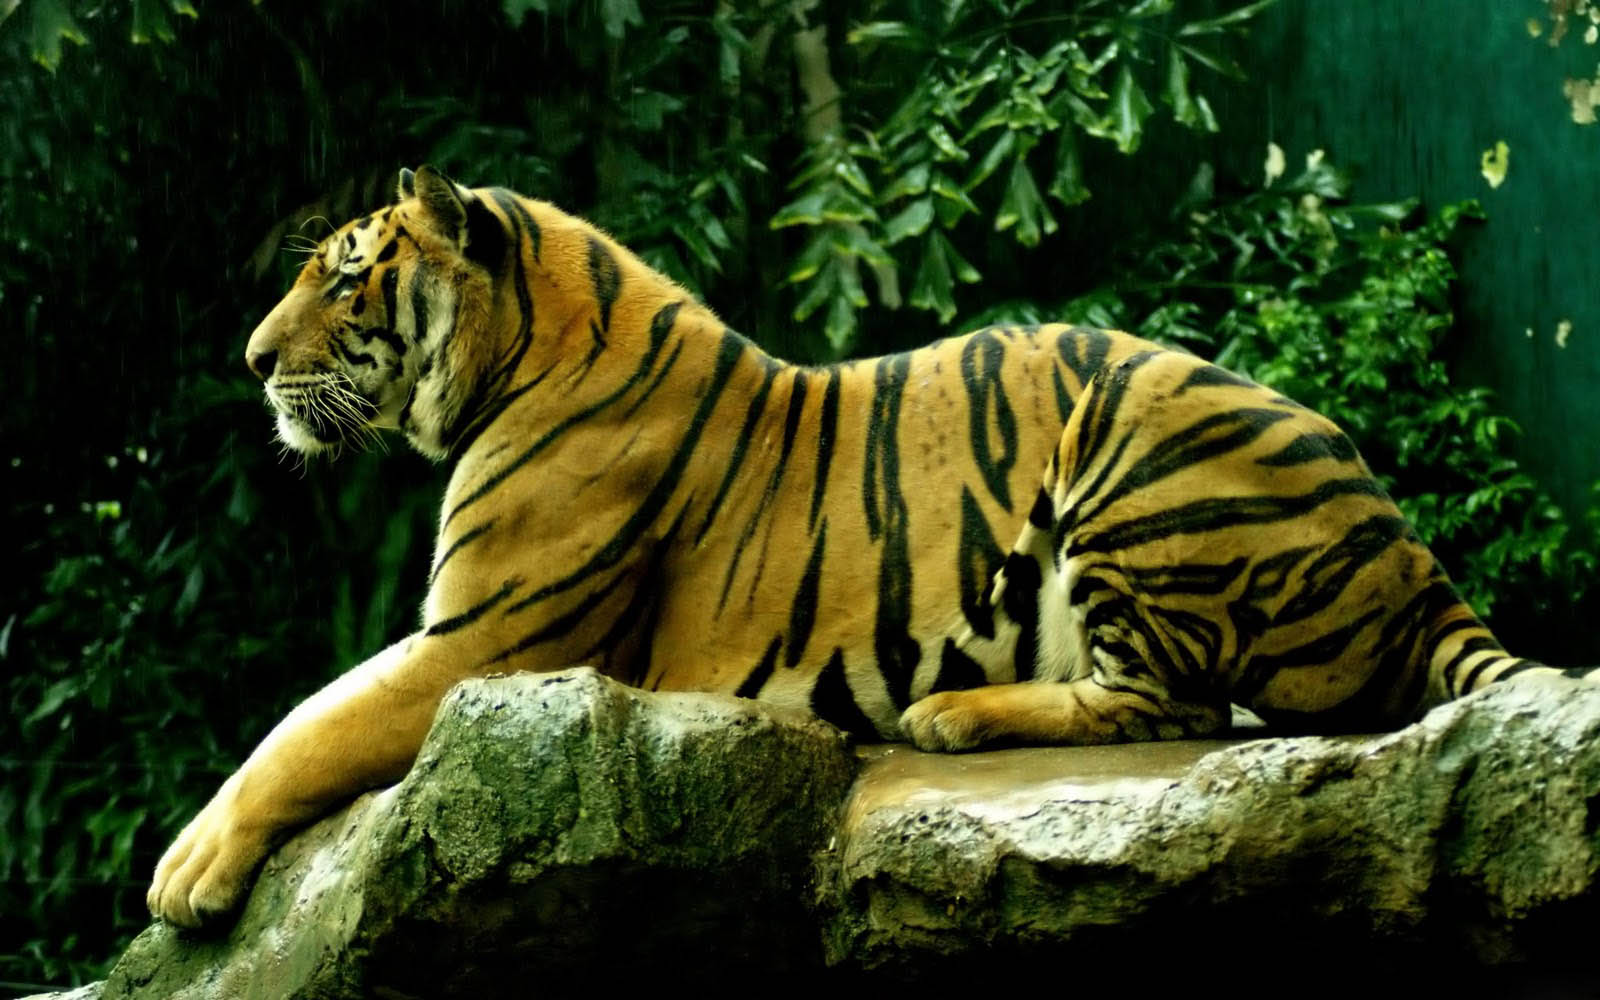 wallpapers: tiger desktop wallpapers and backgrounds